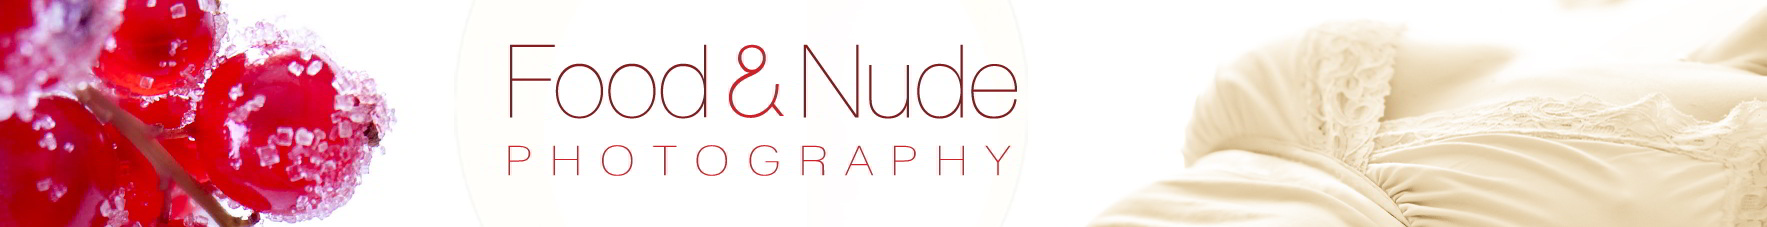 Banner Food and Nude Photography